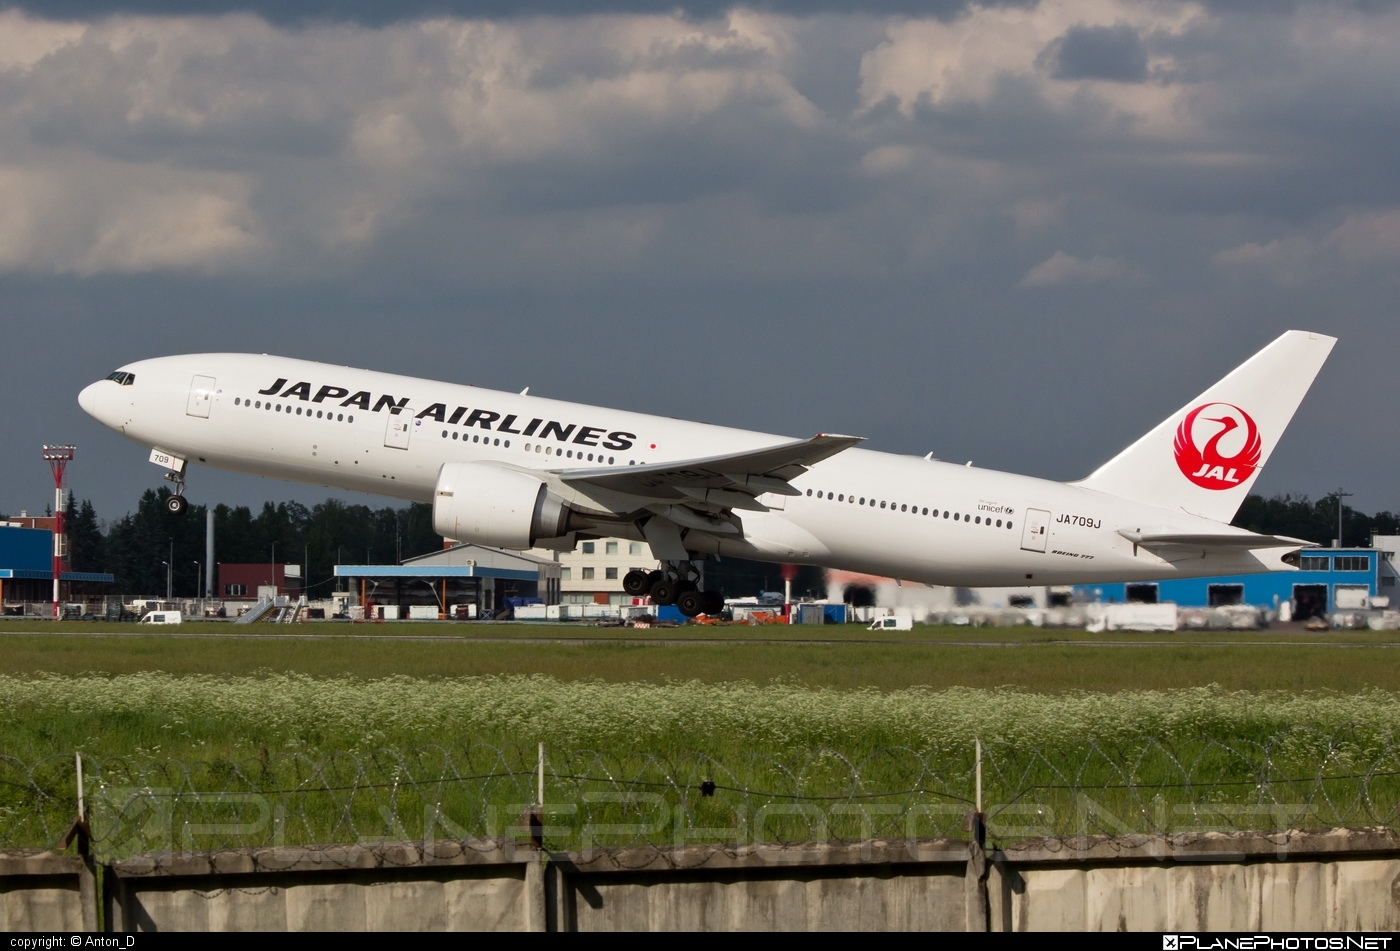 Boeing 777-200ER - JA709J operated by Japan Airlines (JAL) #b777 #b777er #boeing #boeing777 #tripleseven